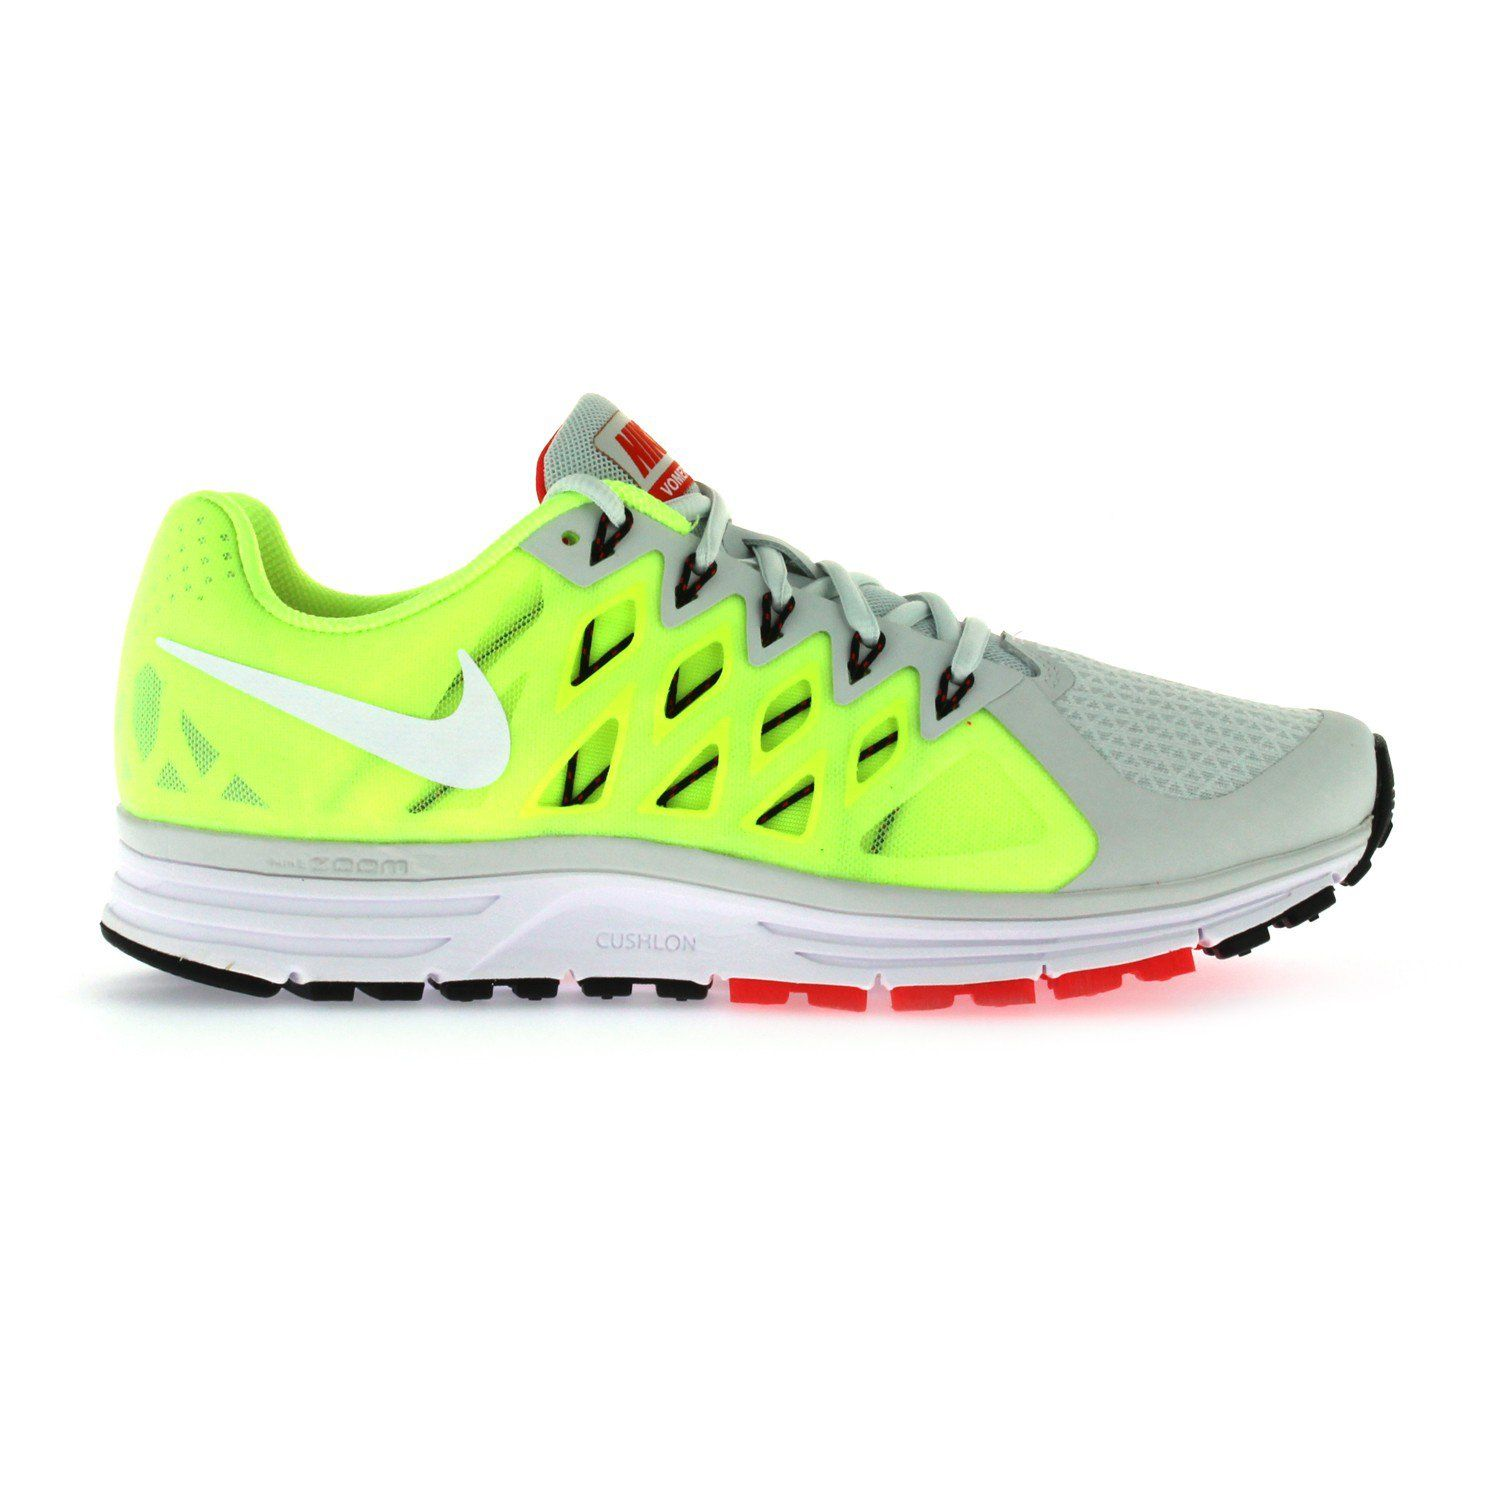 a56d142f4eb Running Shoes For Men · Nike Zoom Vomero 9 M ( 642195-007 ) - http   men